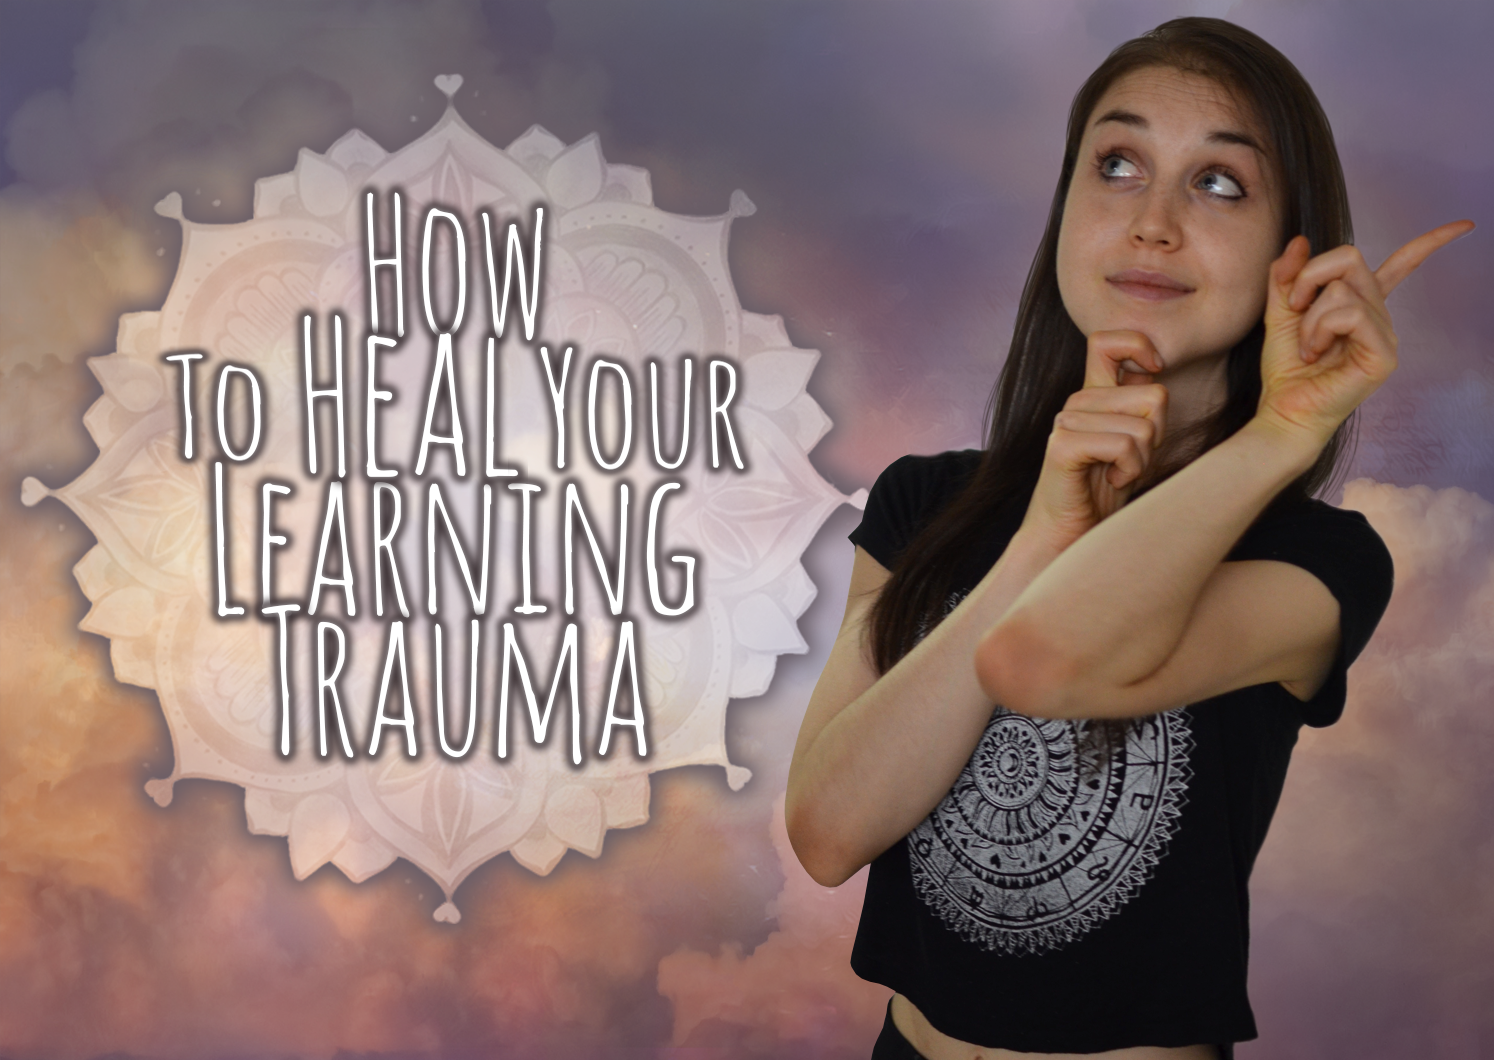 Why Your Learning Trauma Makes Suffering Inescapable – How To Heal Your Learning Trauma